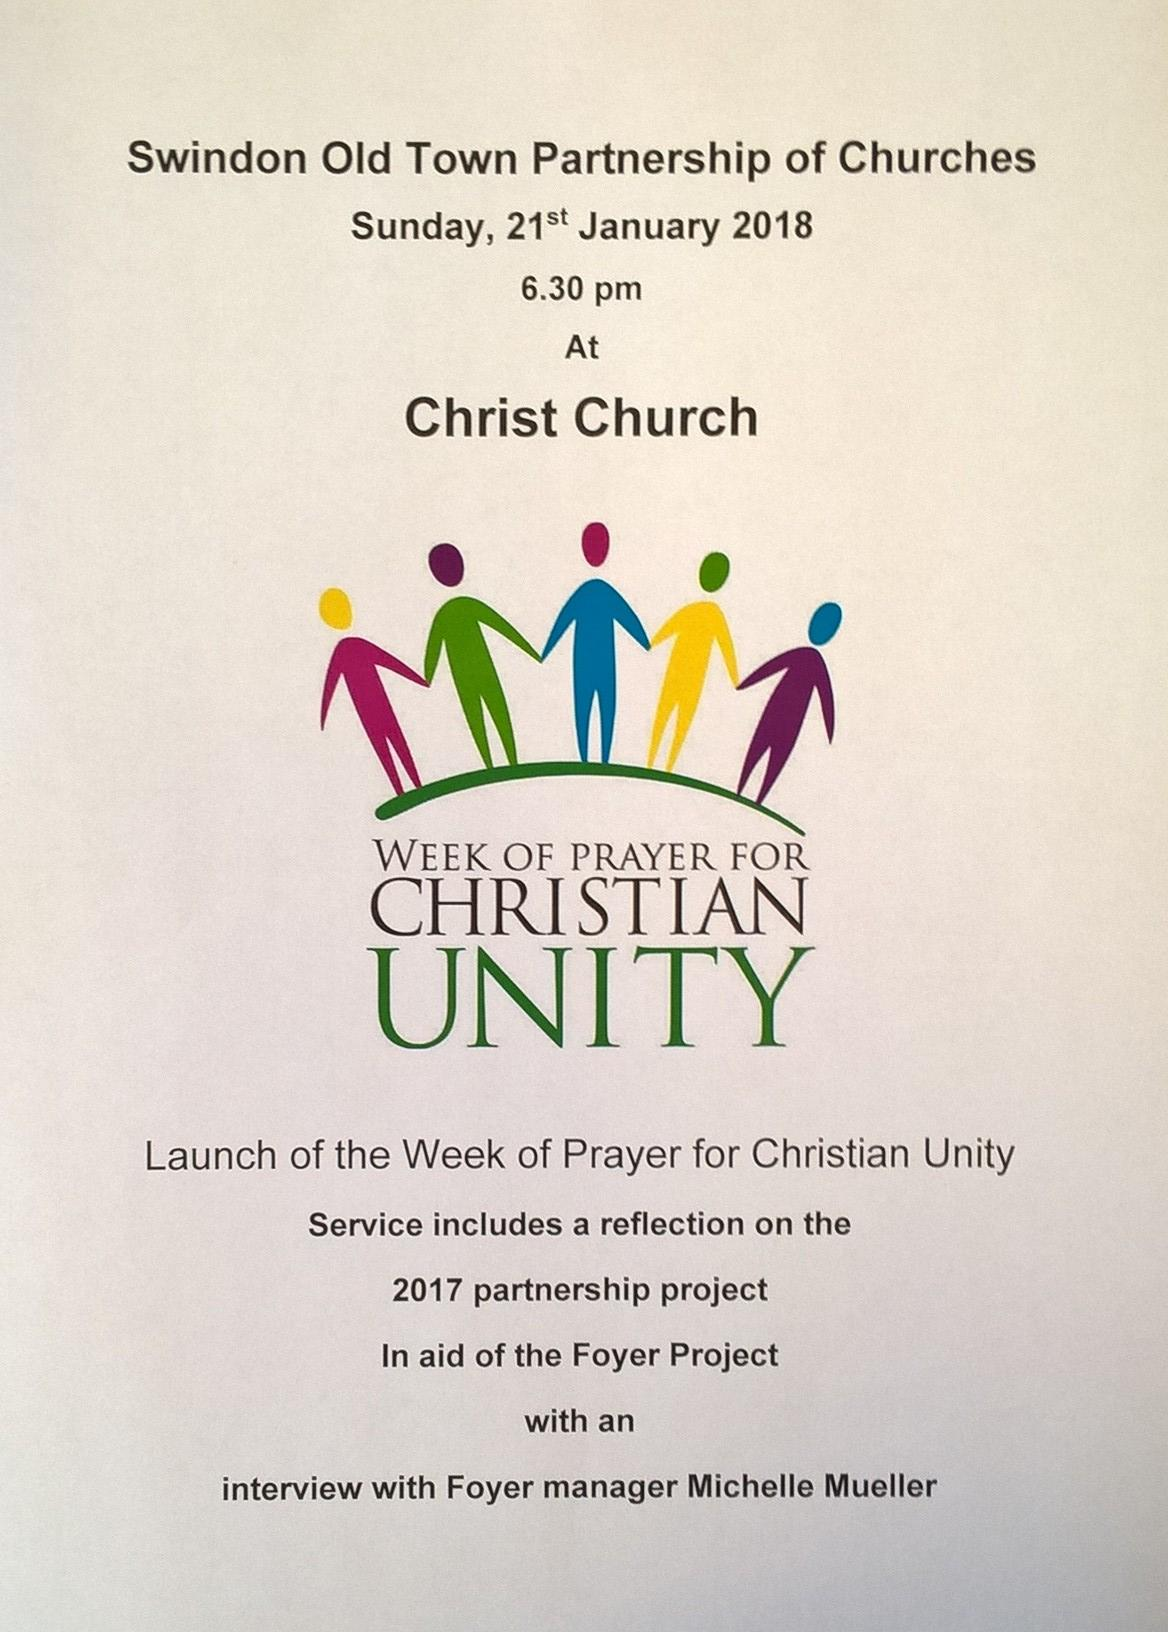 Service - Launch of the Week of Prayer for Christian Unity